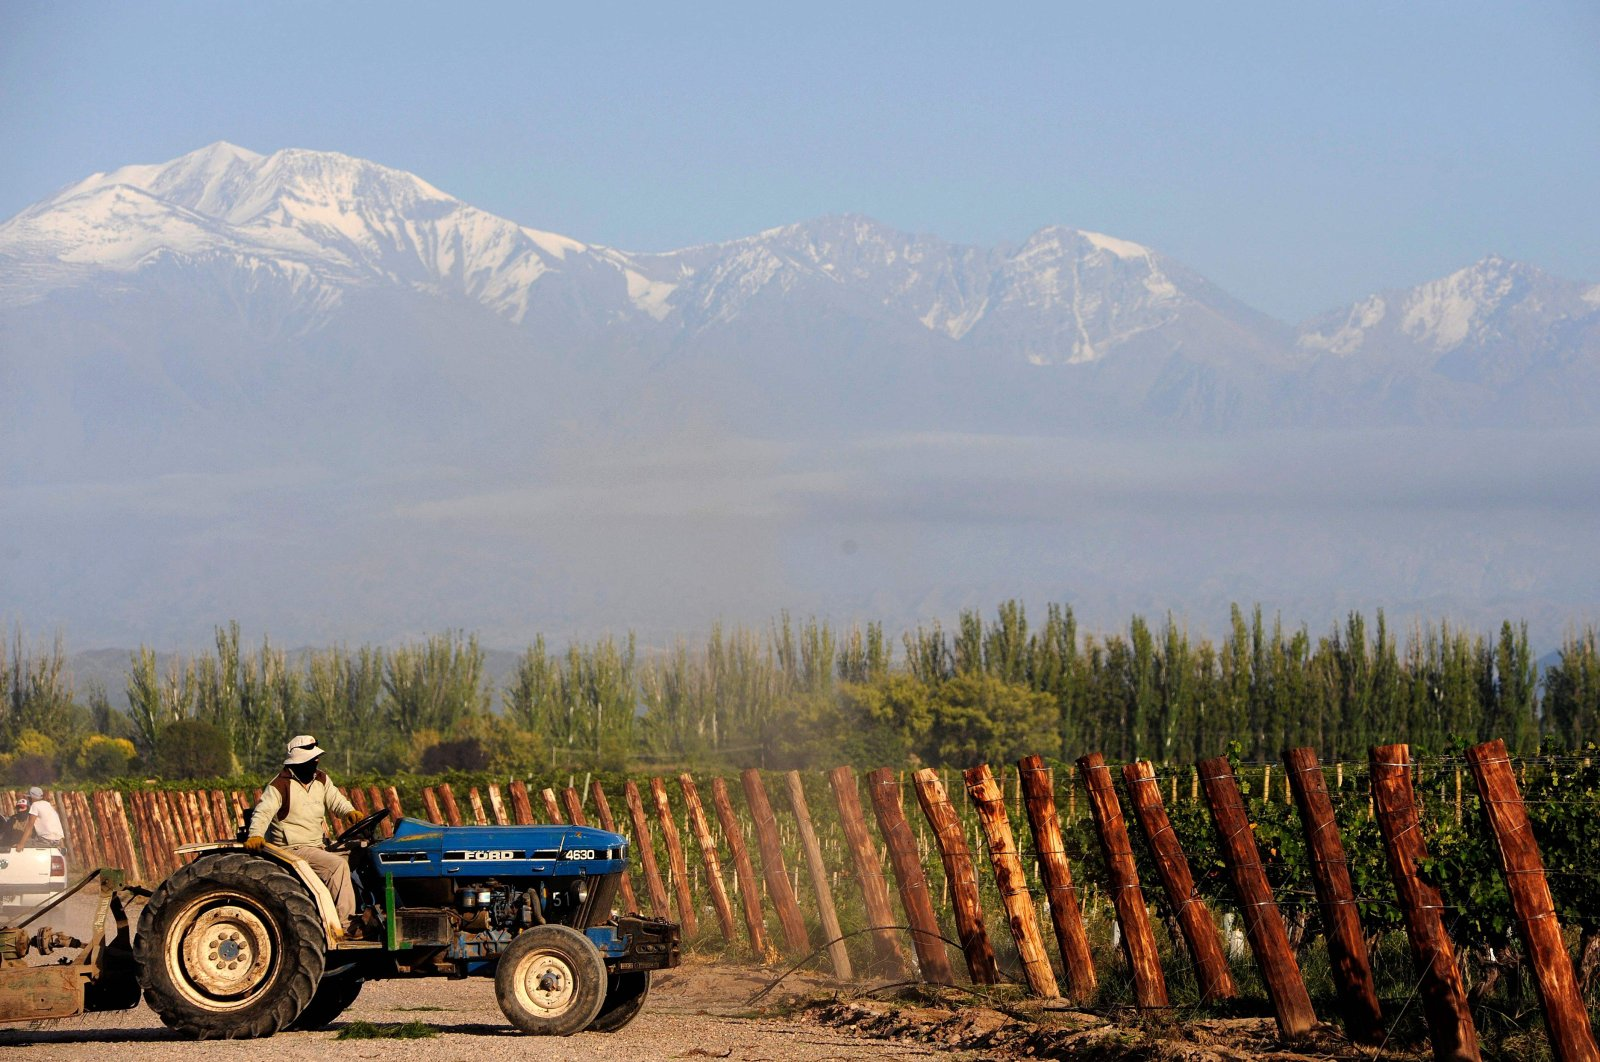 A man works on a tractor at the vineyards of the Catena Zapata winery in Agrelo, Lujan de Cuyo department, Mendoza province, Argentina, March 12, 2021. (AFP Photo)